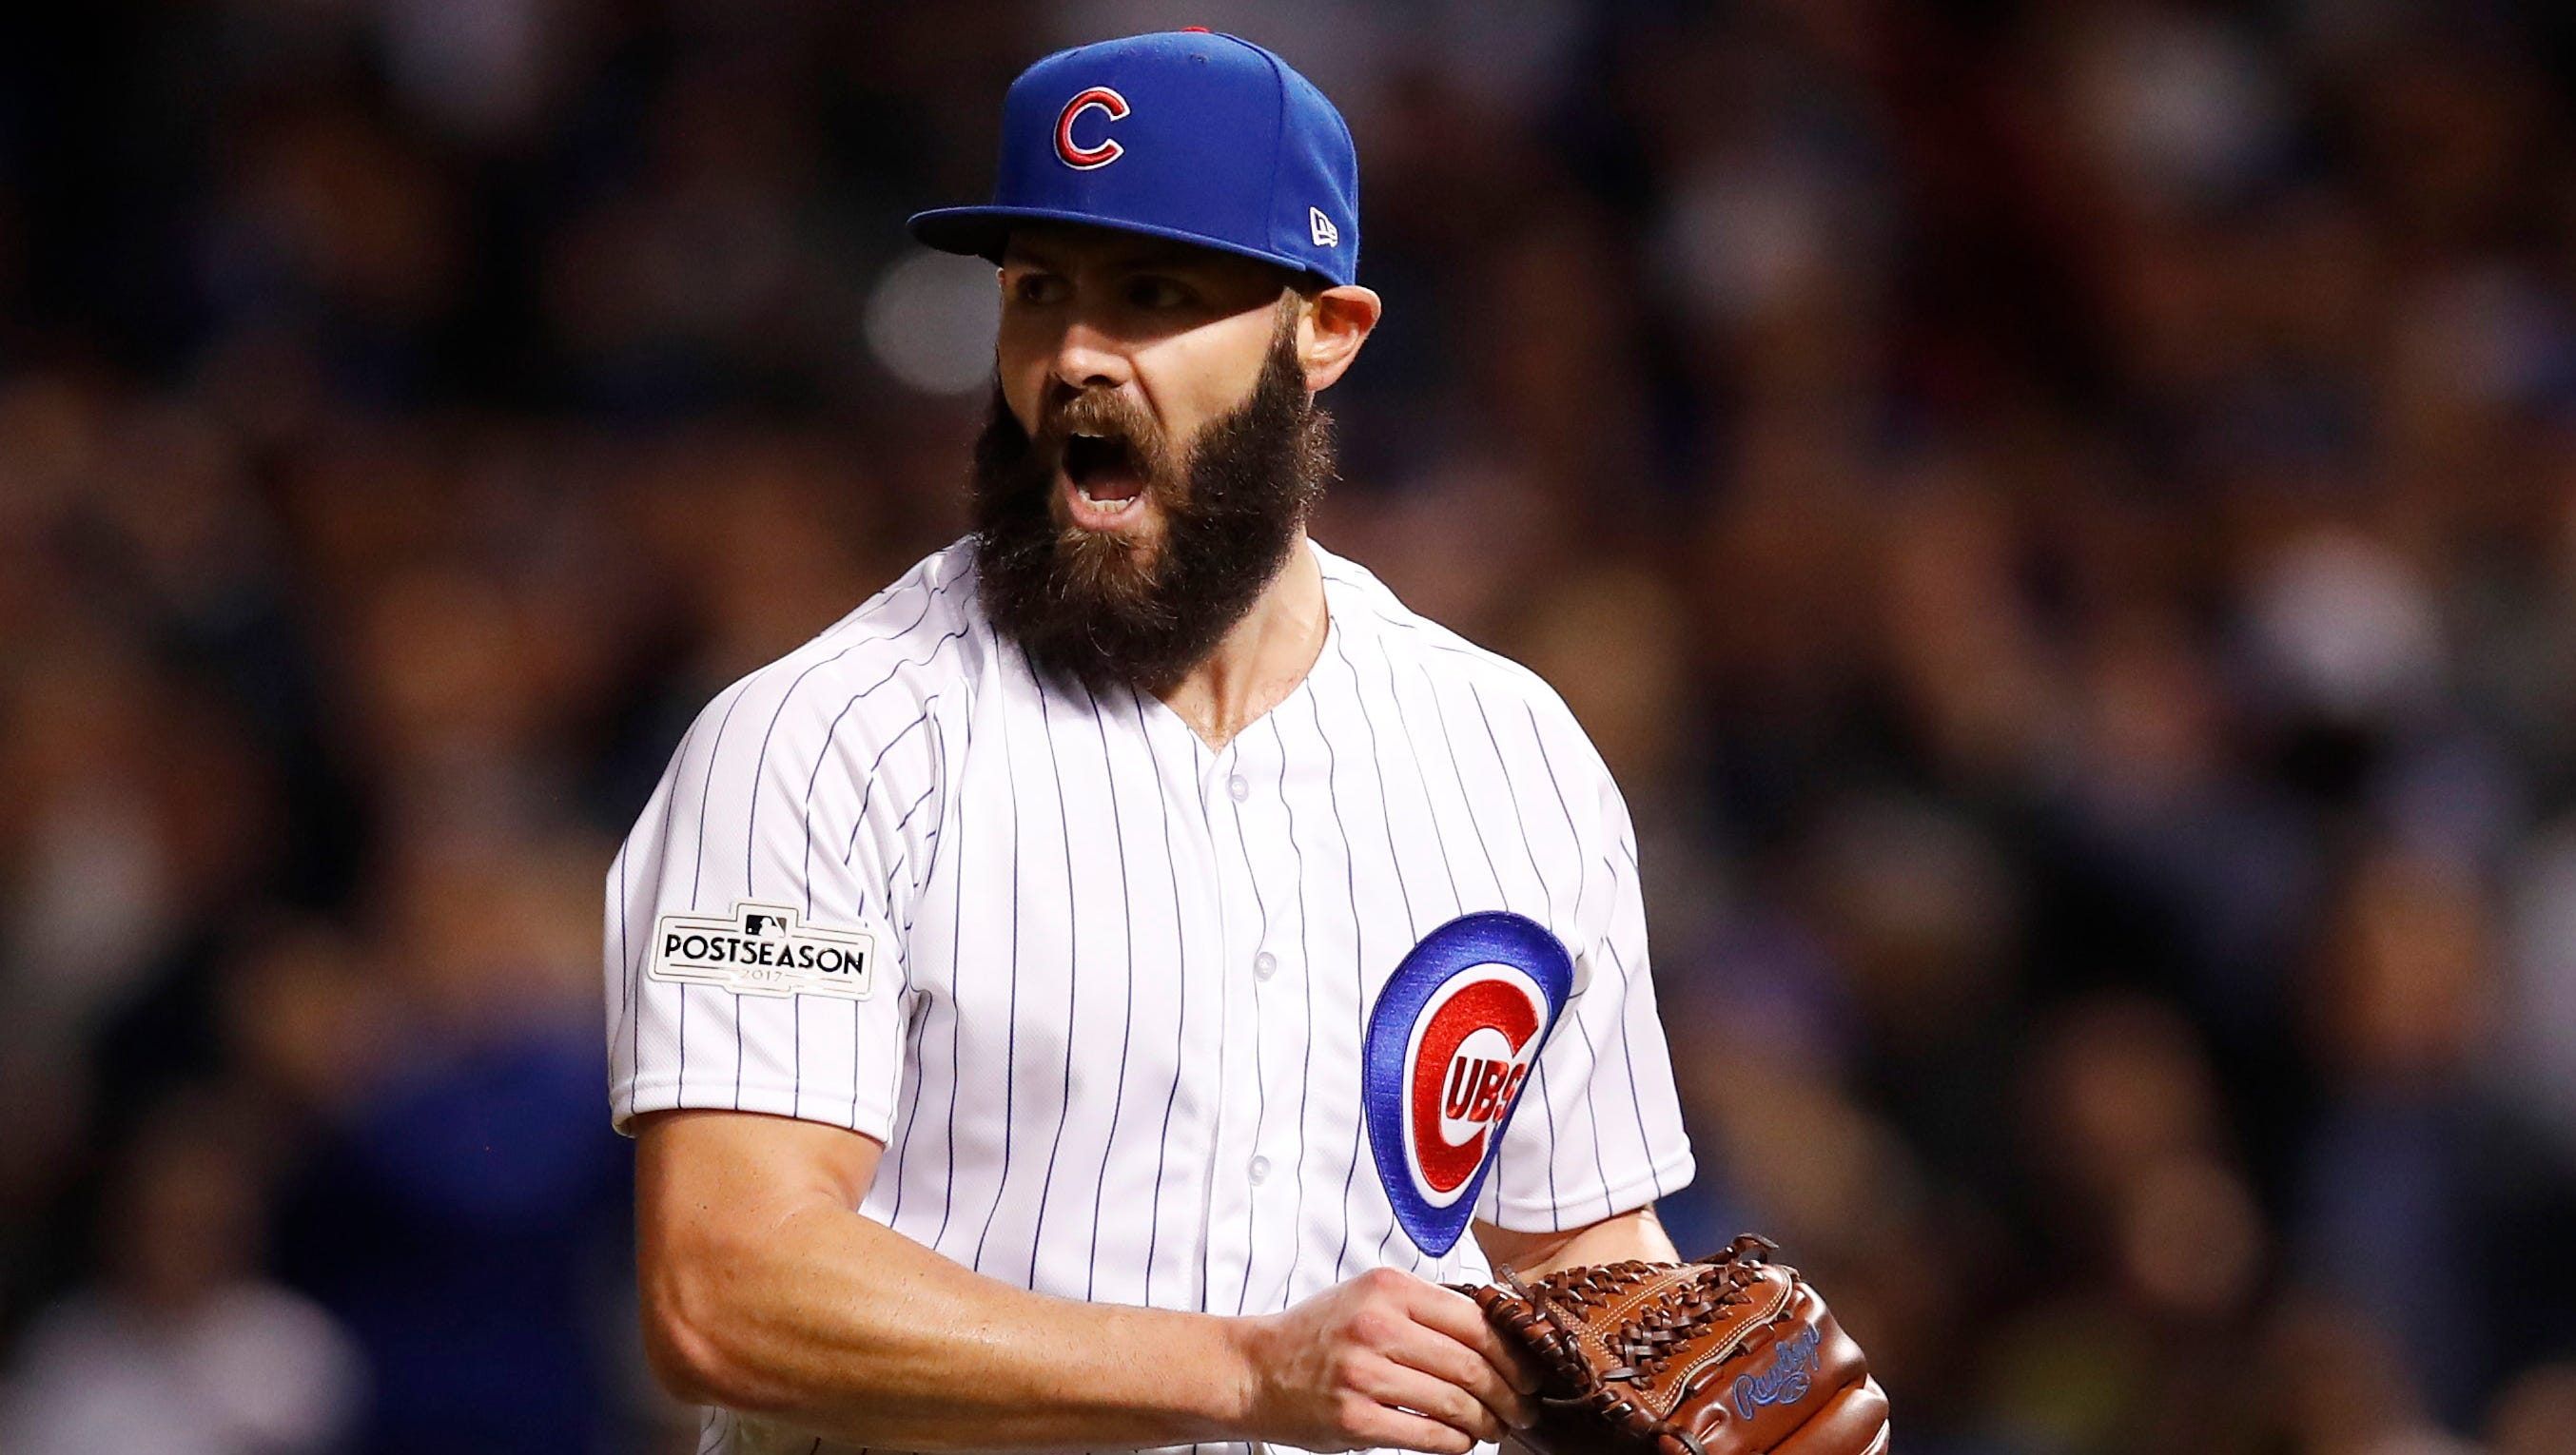 With Jake Arrieta, Phillies done rebuilding, ready to contend